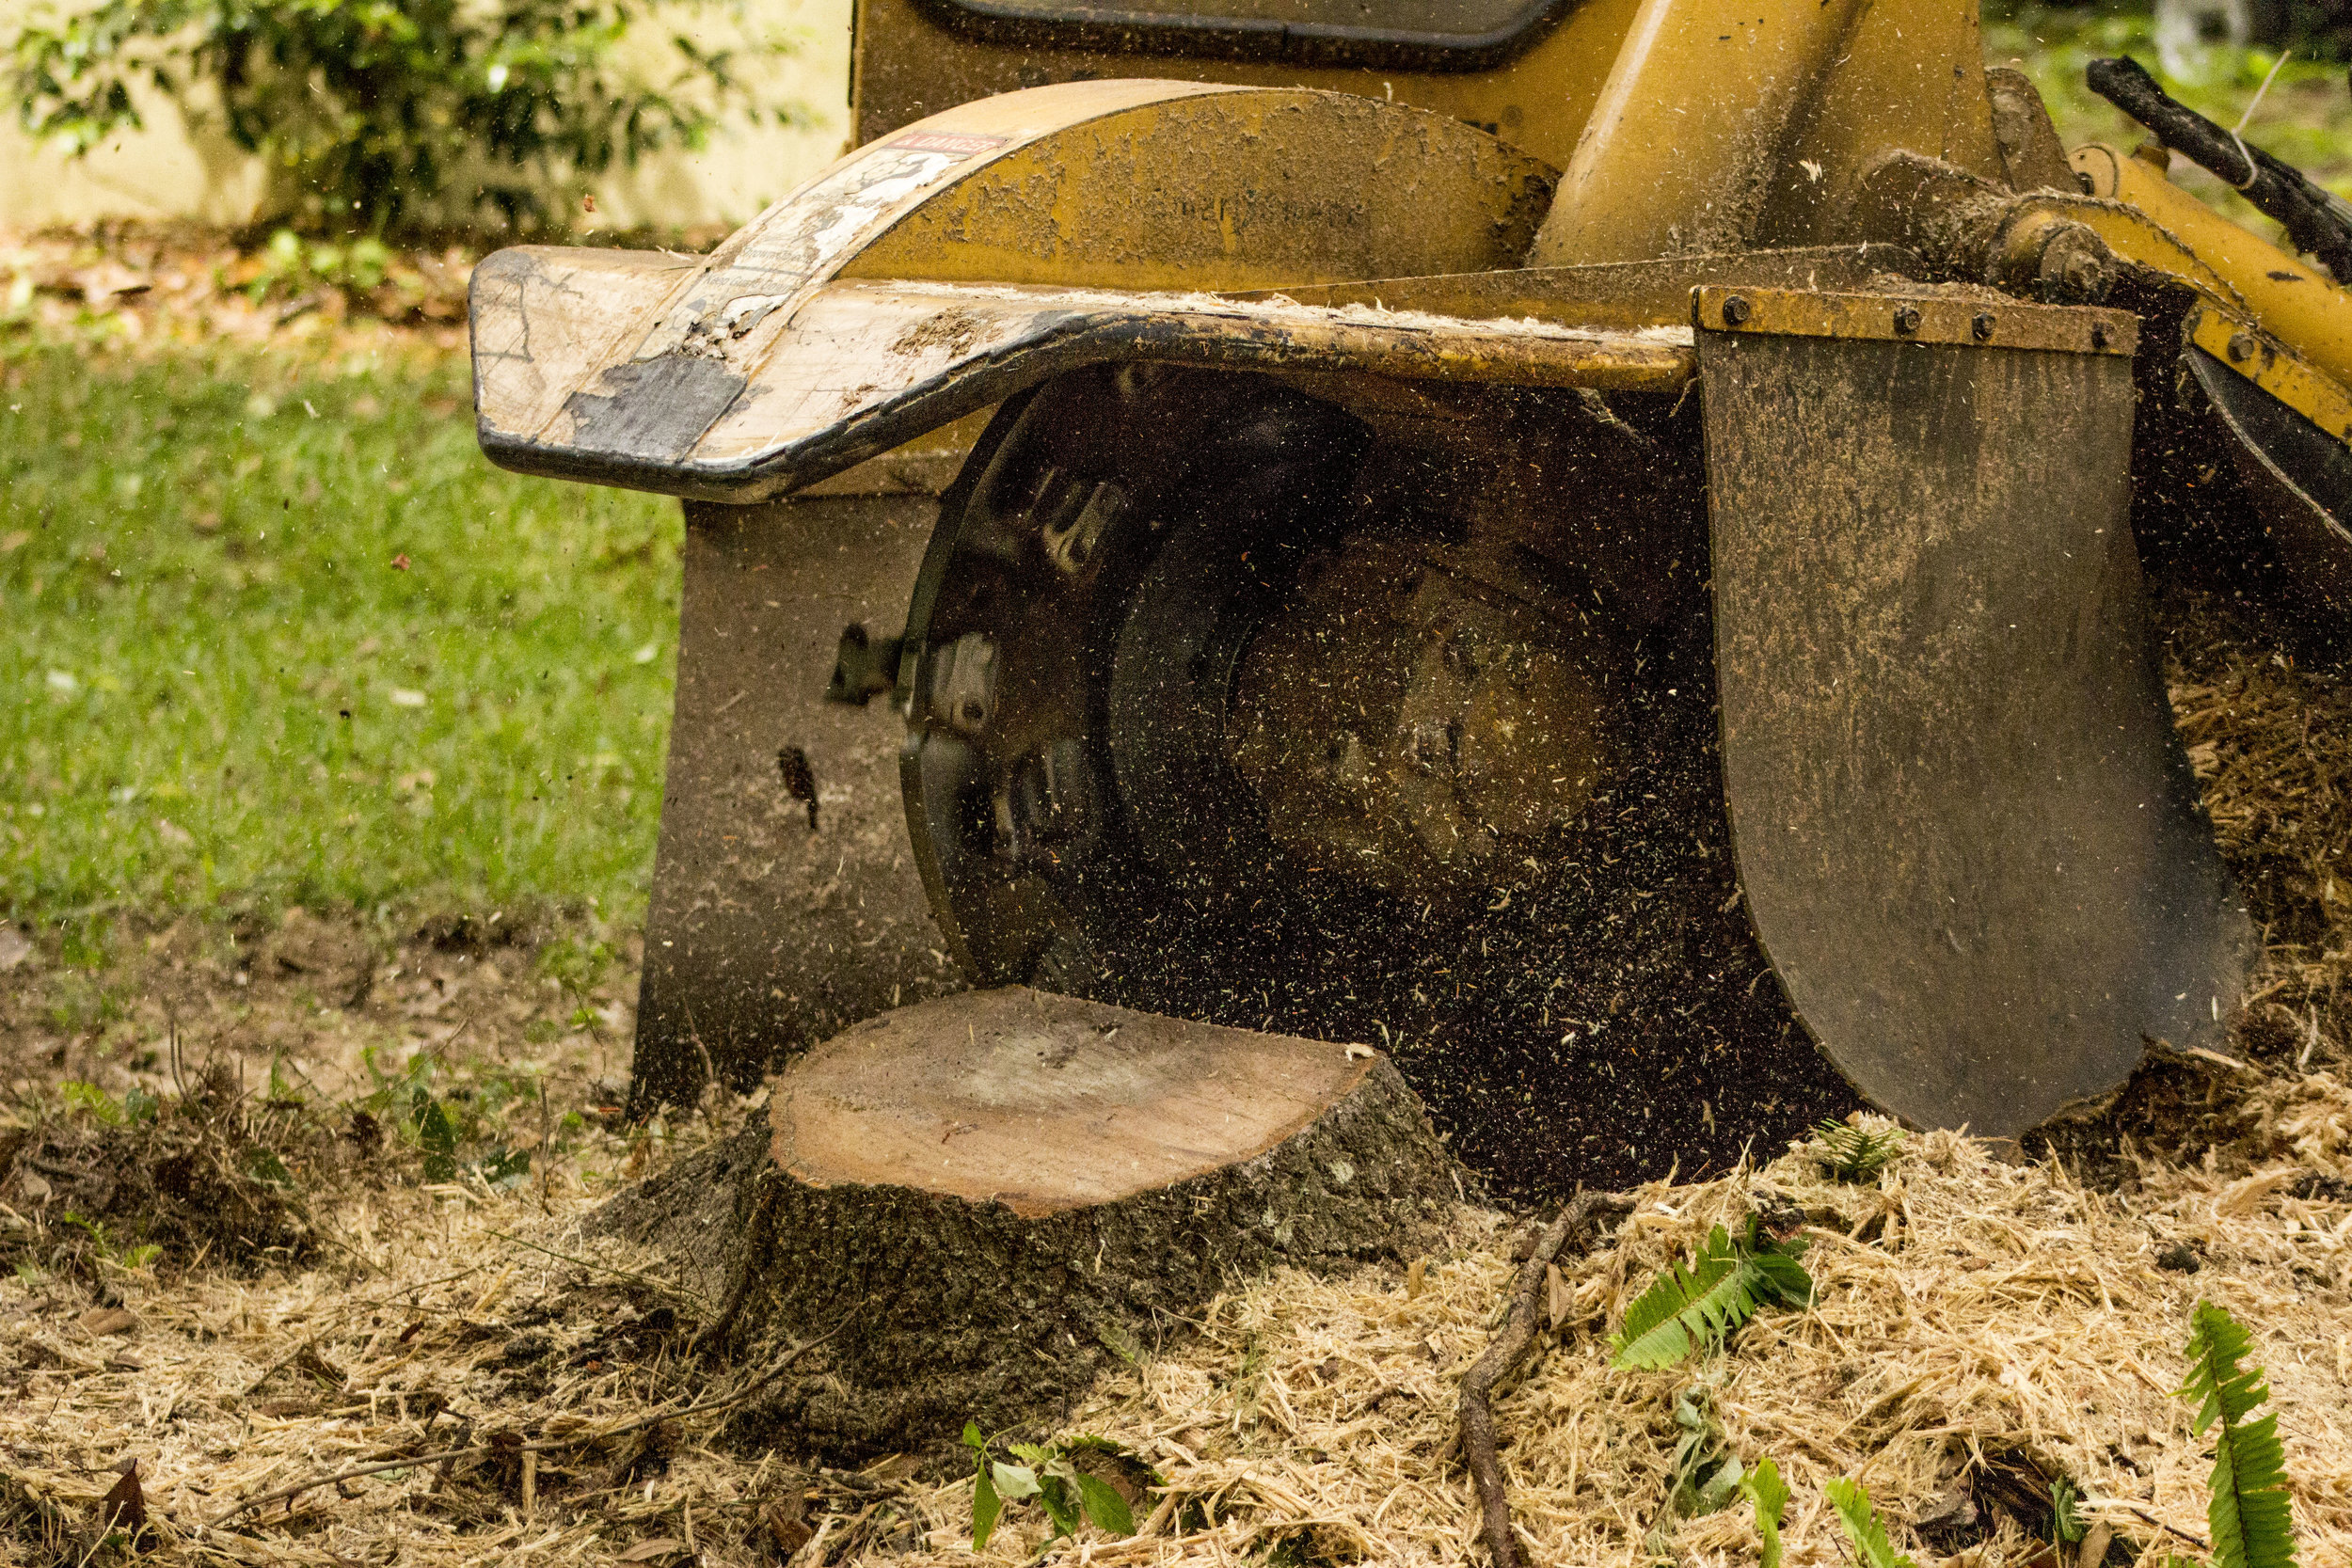 Stump Grinding - We have our own stump grinder, which can be an additional service for a finishing touch. Once the stump has been ground, you won't be able to tell that a tree was ever there. You can plant grass, lay down a patio or add an addition to your home.